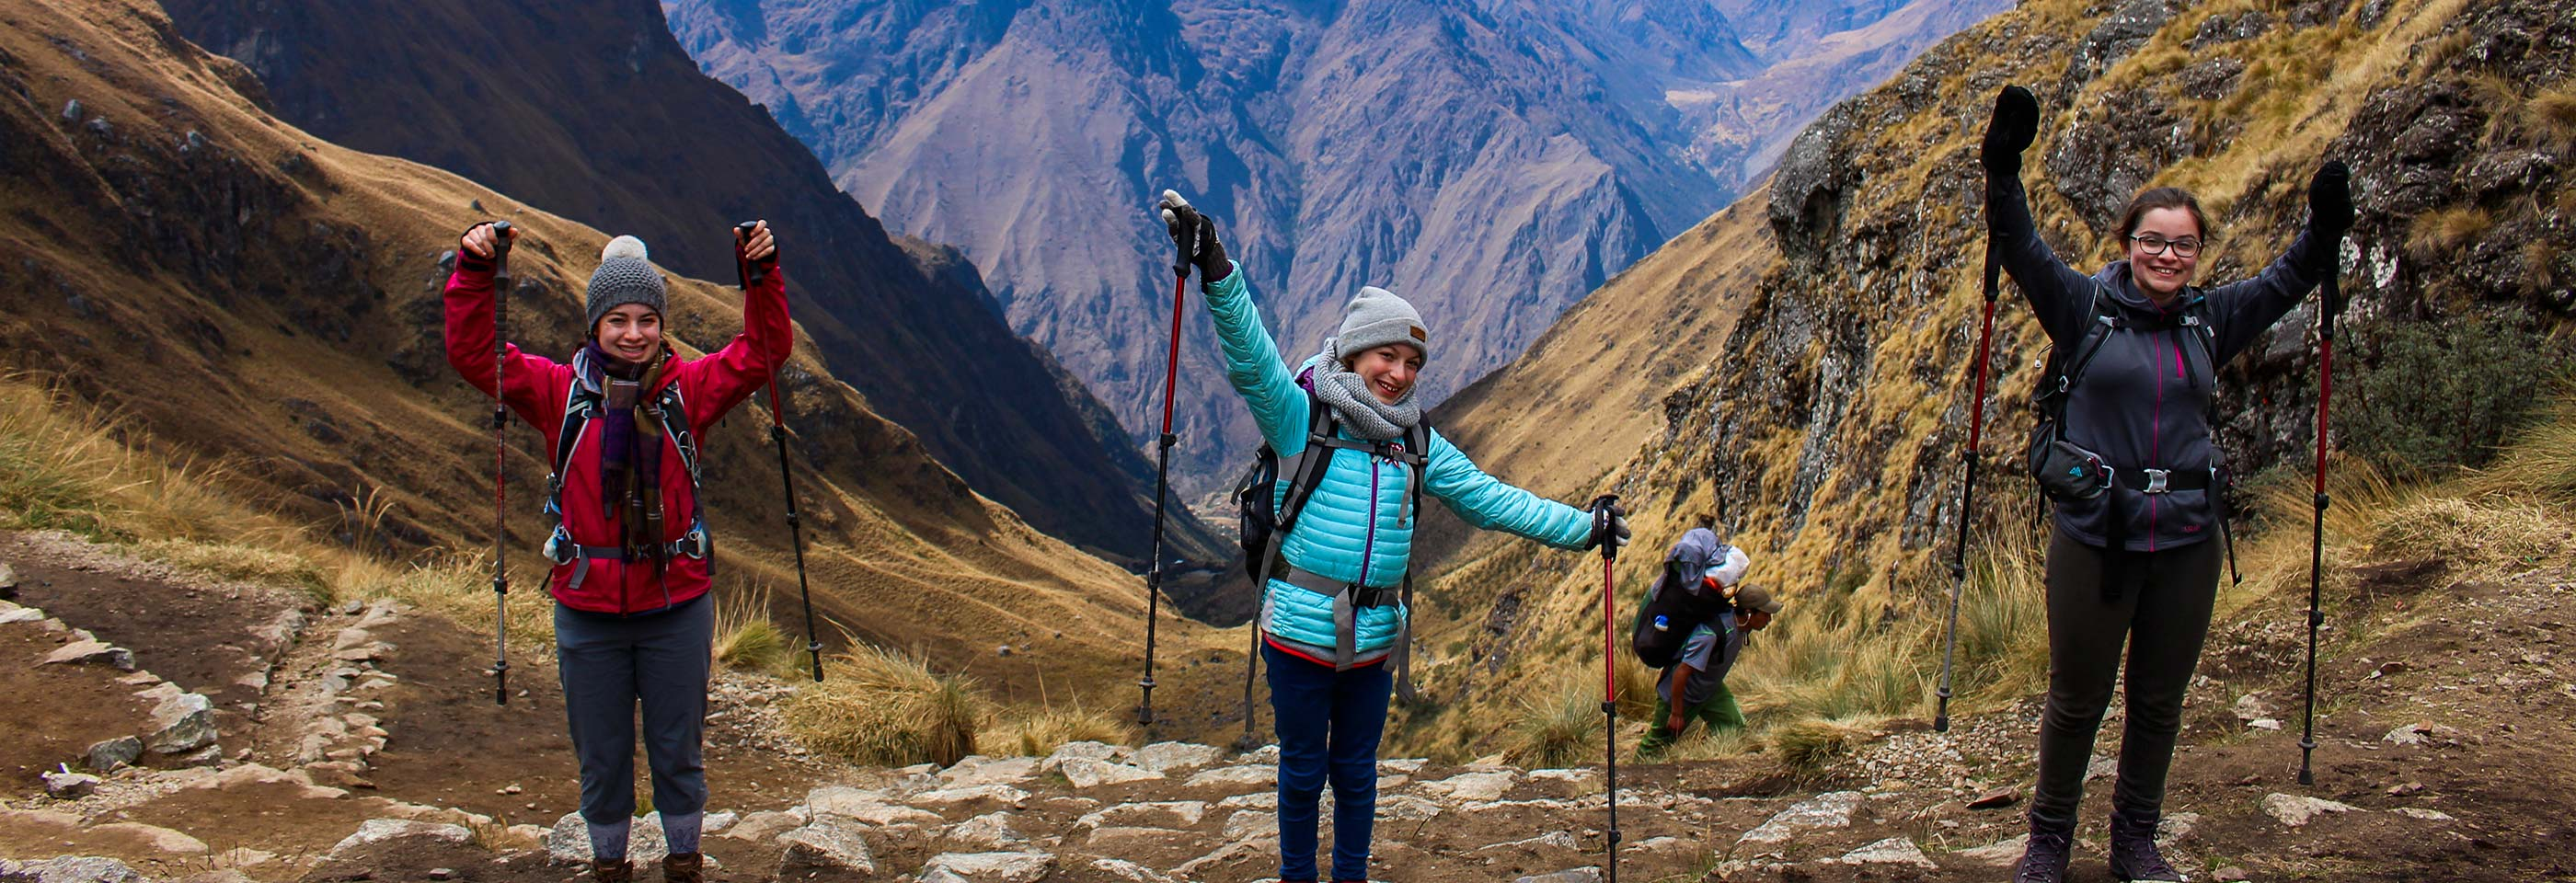 The Inca Trail trave